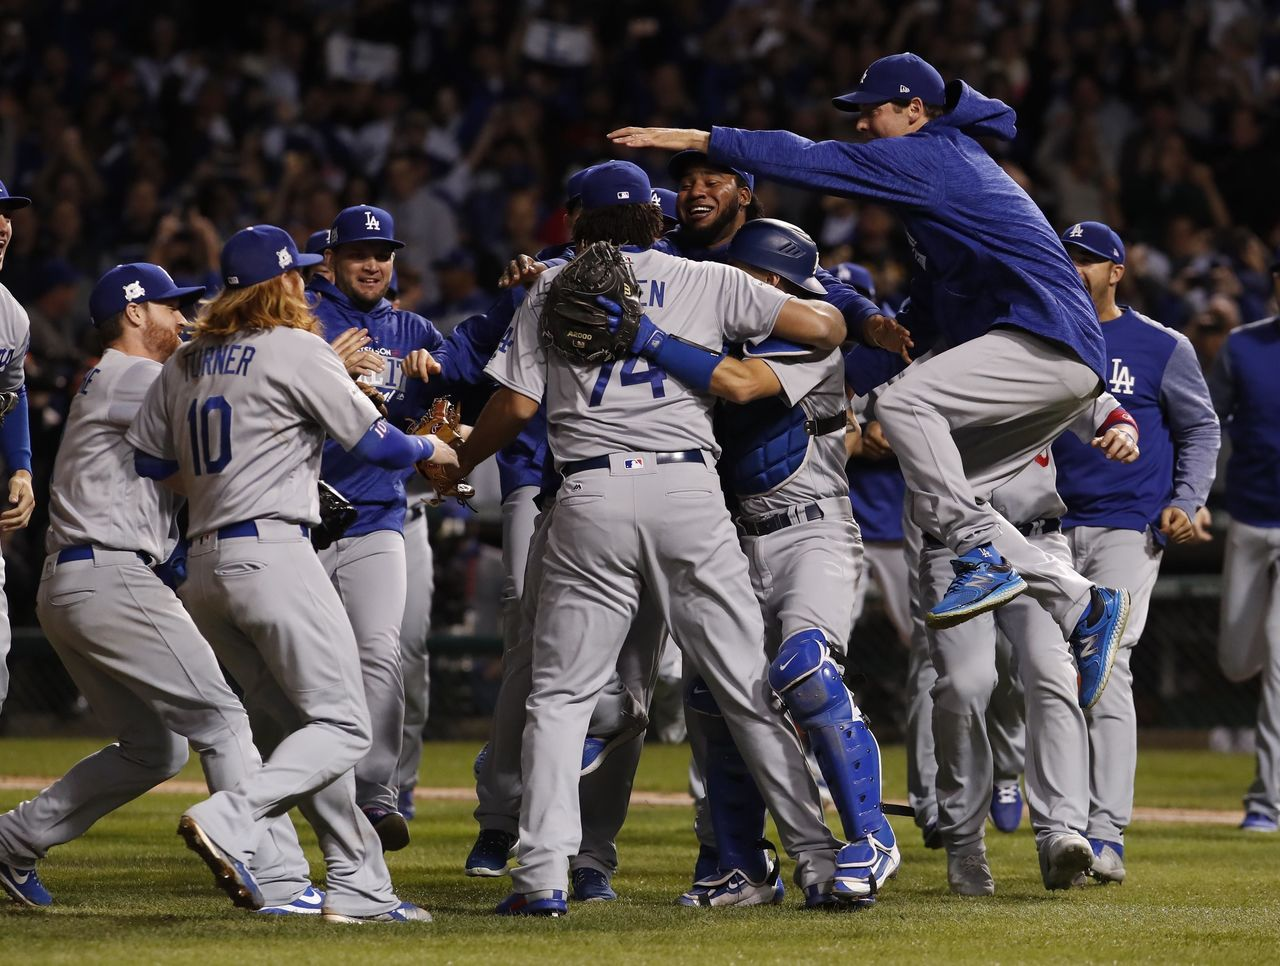 Cropped_2017-10-20t032153z_807213029_nocid_rtrmadp_3_mlb-nlcs-los-angeles-dodgers-at-chicago-cubs